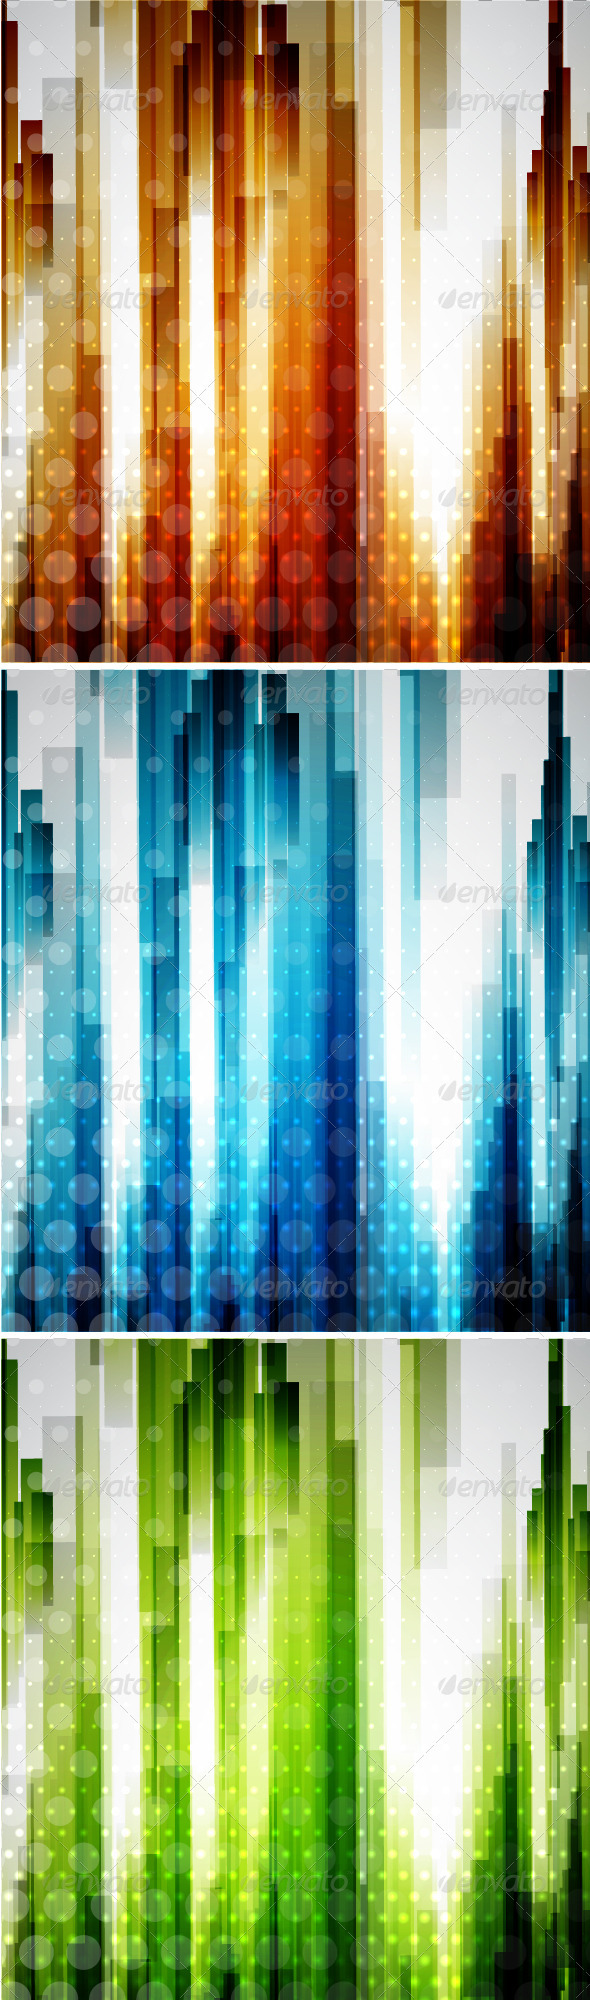 Vector Vertical Lines Backgrounds